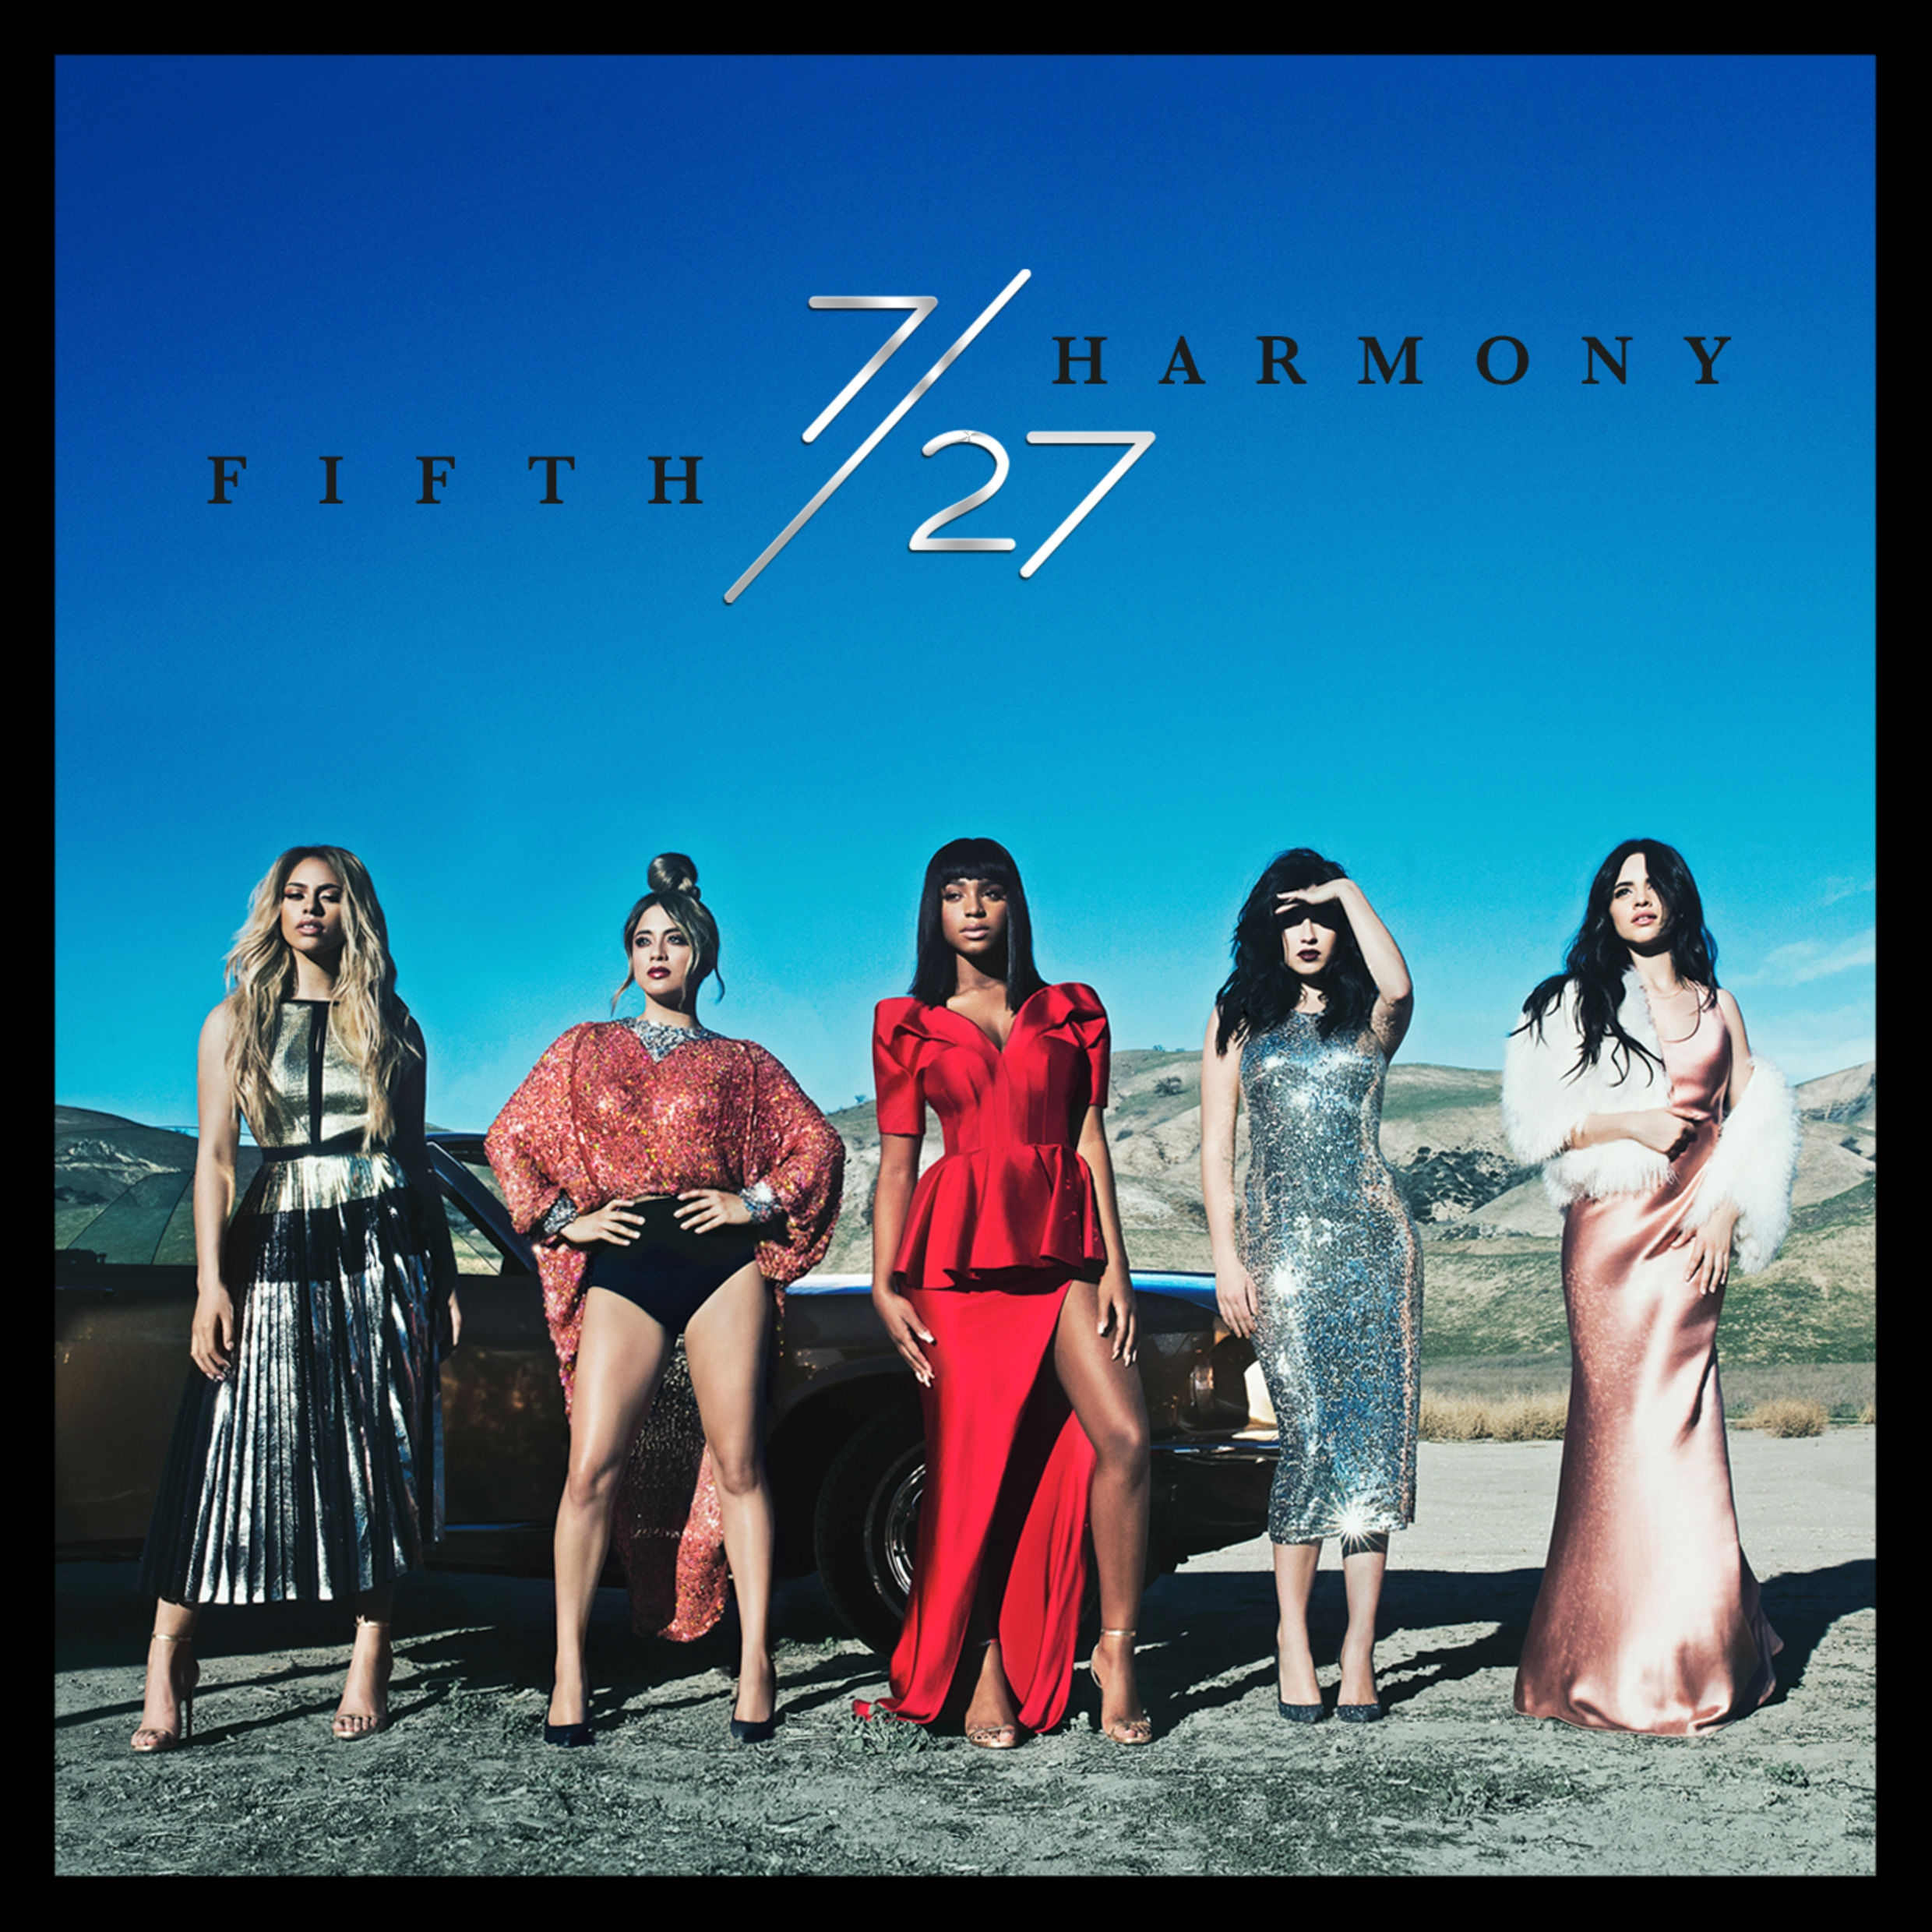 FIFTH HARMONY's new album 7/27 is OUT! You might wanna HEAR IT!  Preview it NOW... (Listen)